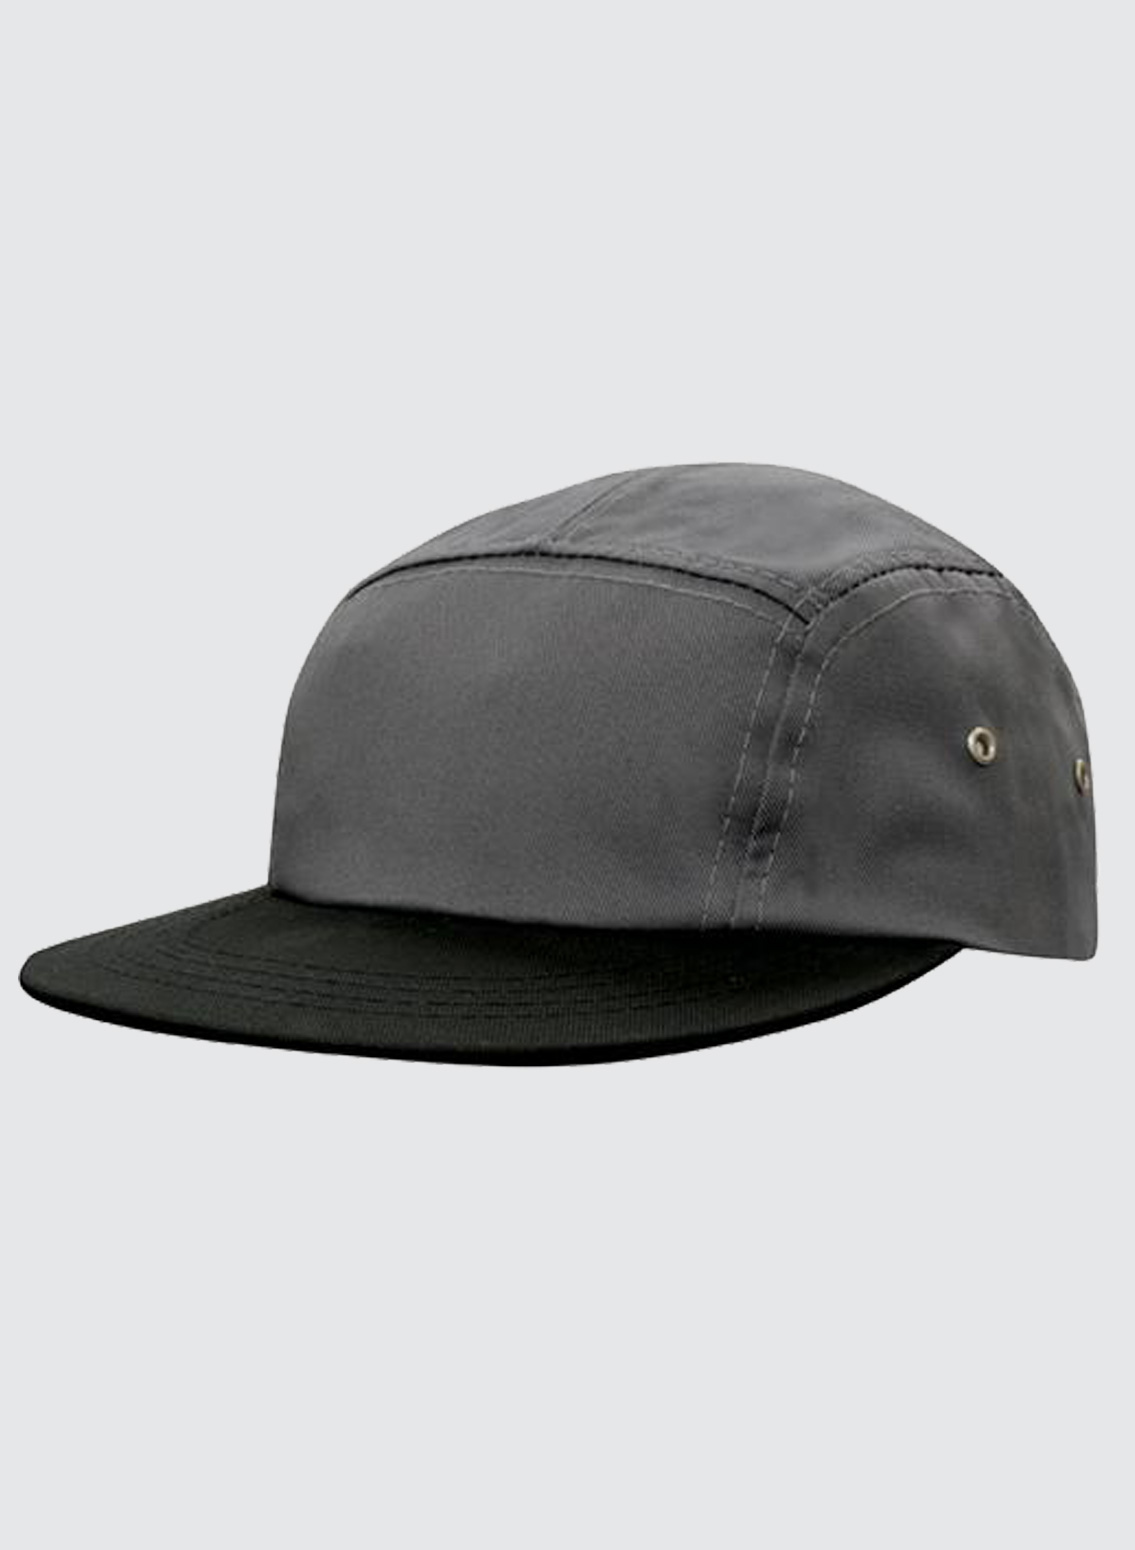 Stone 5 PANEL Cotton Twill Square Front FLAT Peak with Metal Eyelets Cap Hat